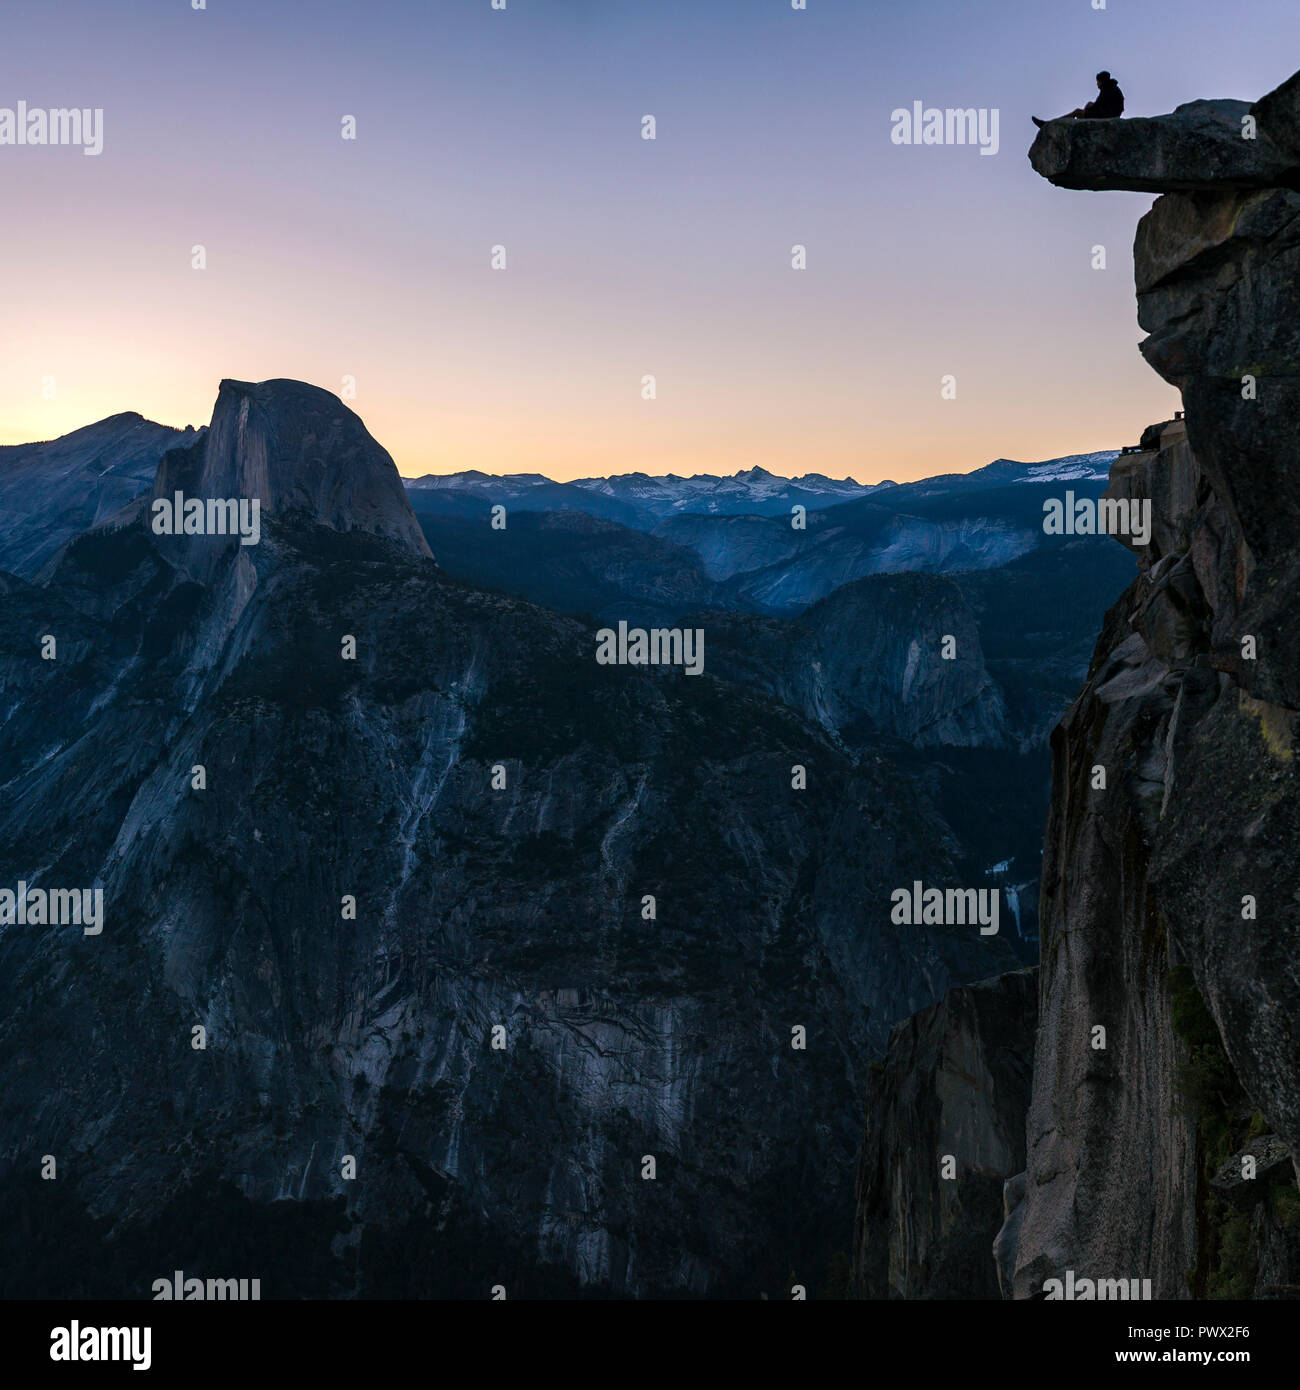 Man sitting at the edge of a cliff in Yosemite - Stock Image